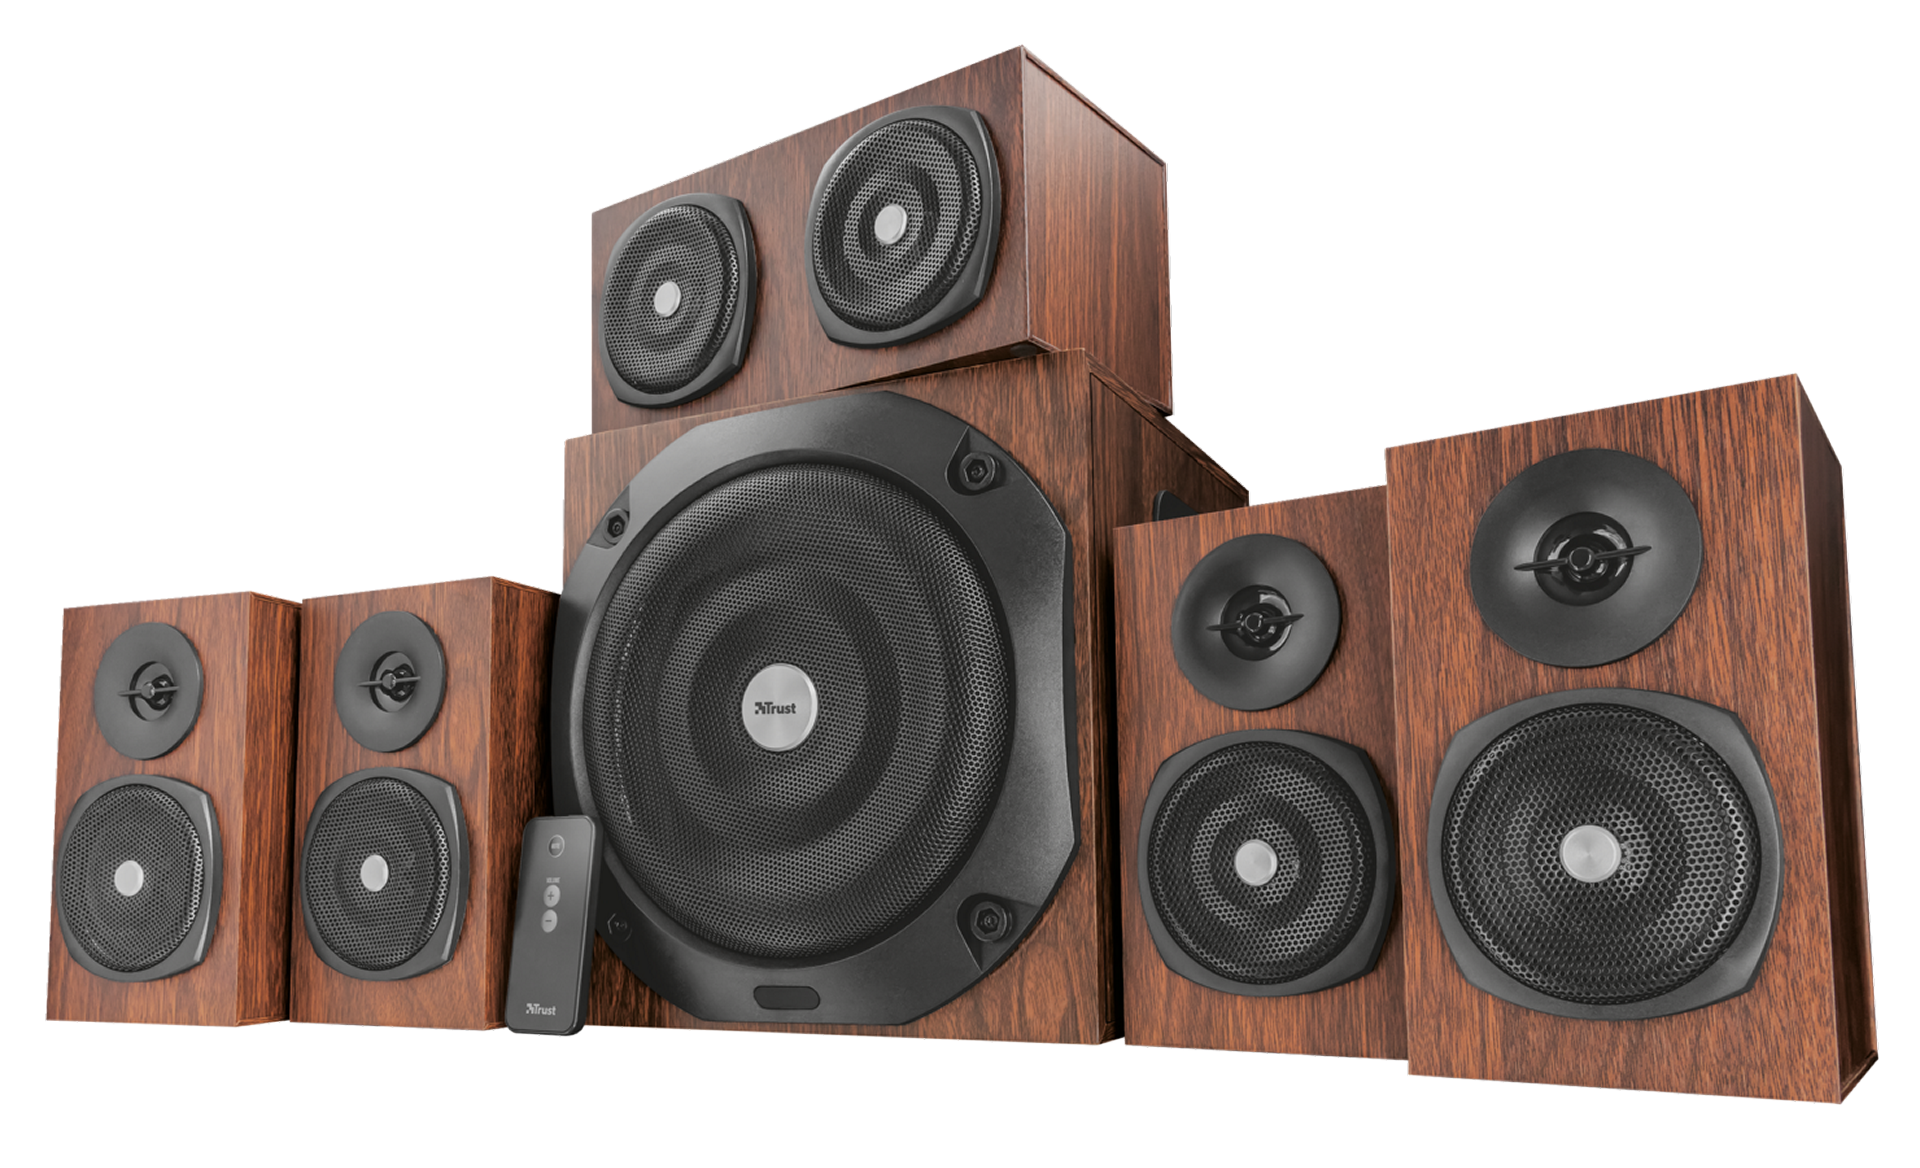 zvuk. systém TRUST Vigor 5.1 Surround Speaker System for pc - brown